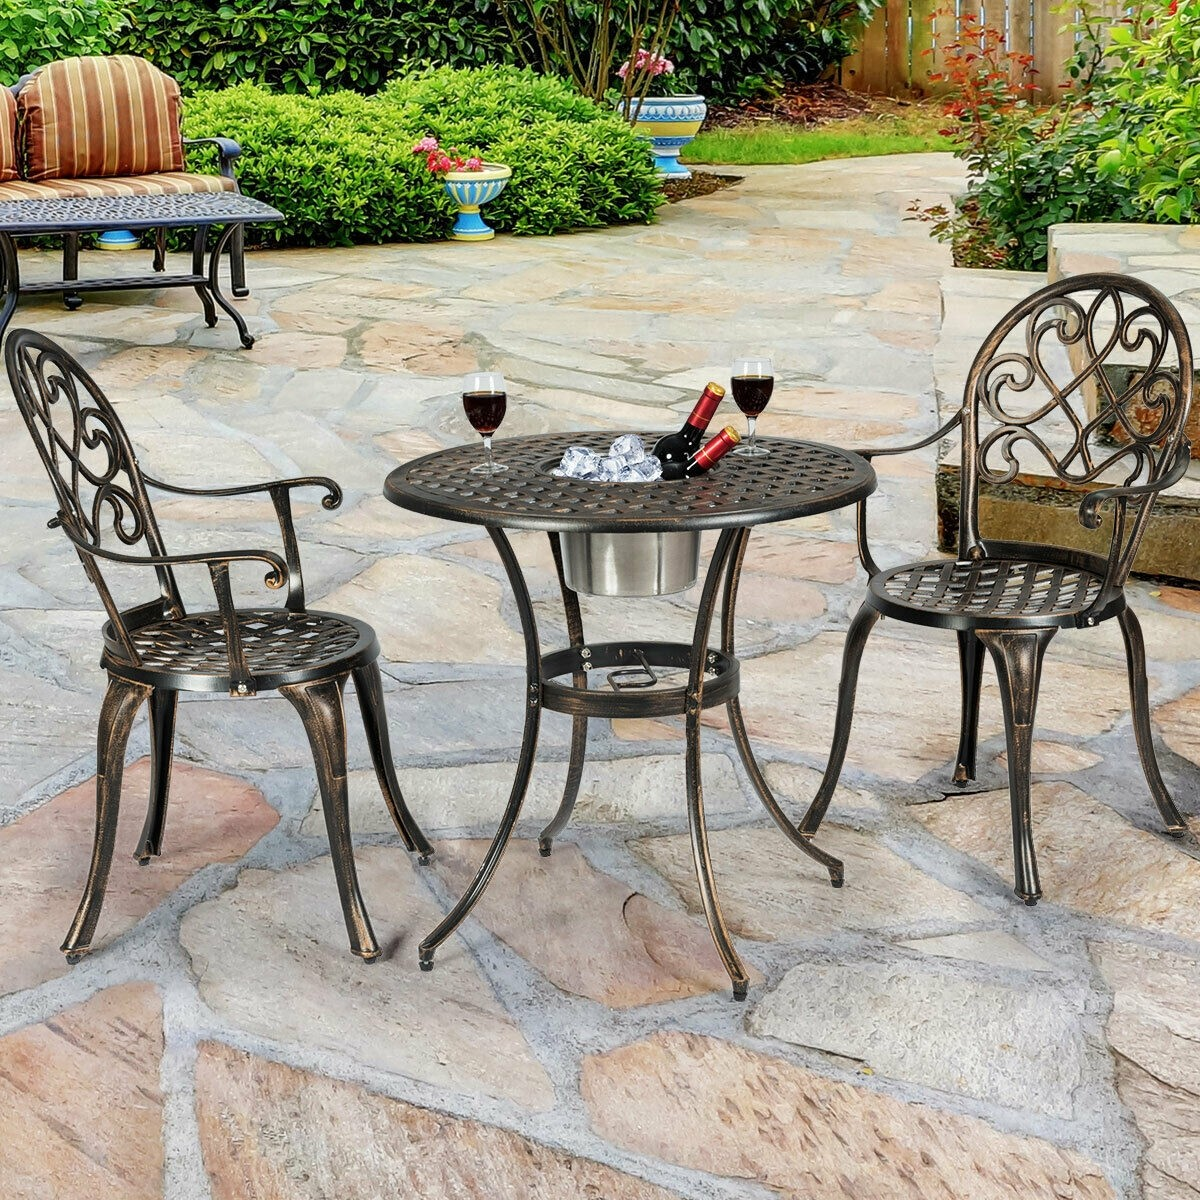 3 Pcs Outdoor Set Patio Bistro With Attached Removable Ice Bucket Outdoor Furniture Sets Outdoor Furniture Furniture